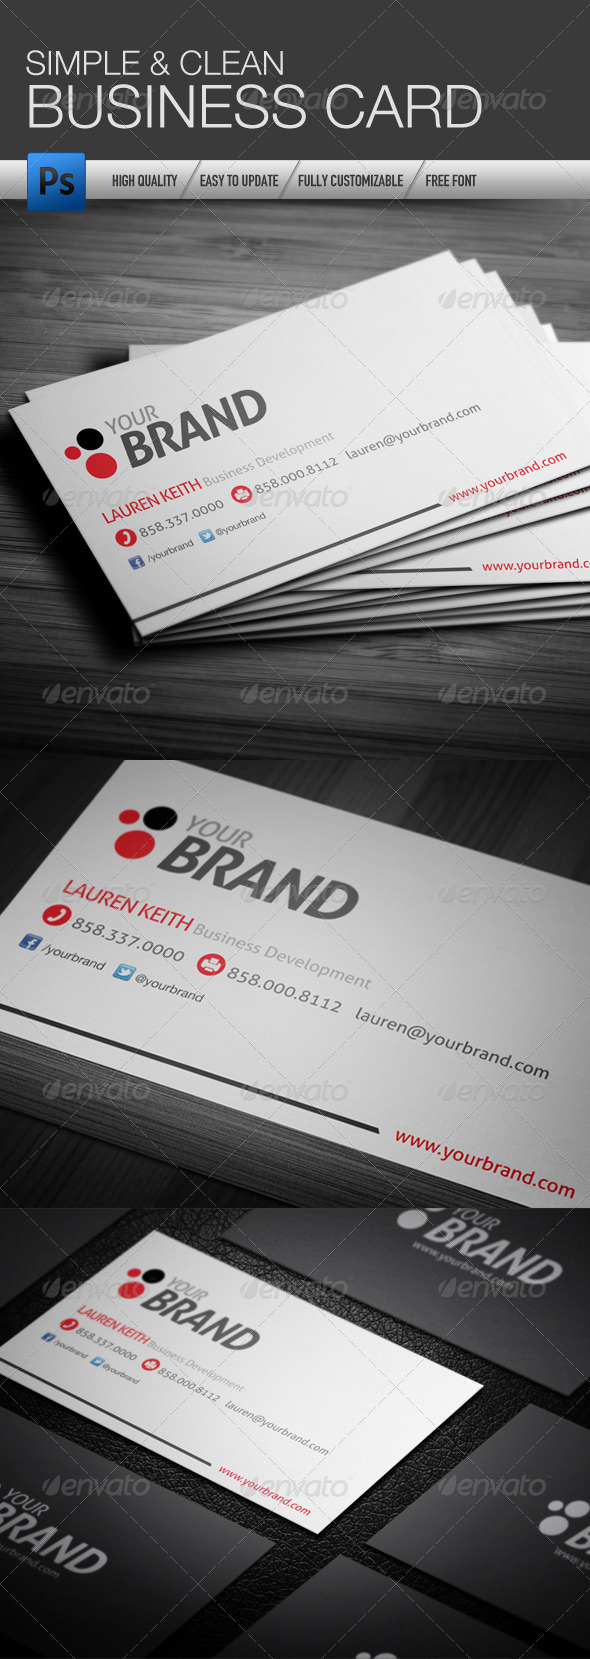 GraphicRiver Simple and Clean Business Card 4361450